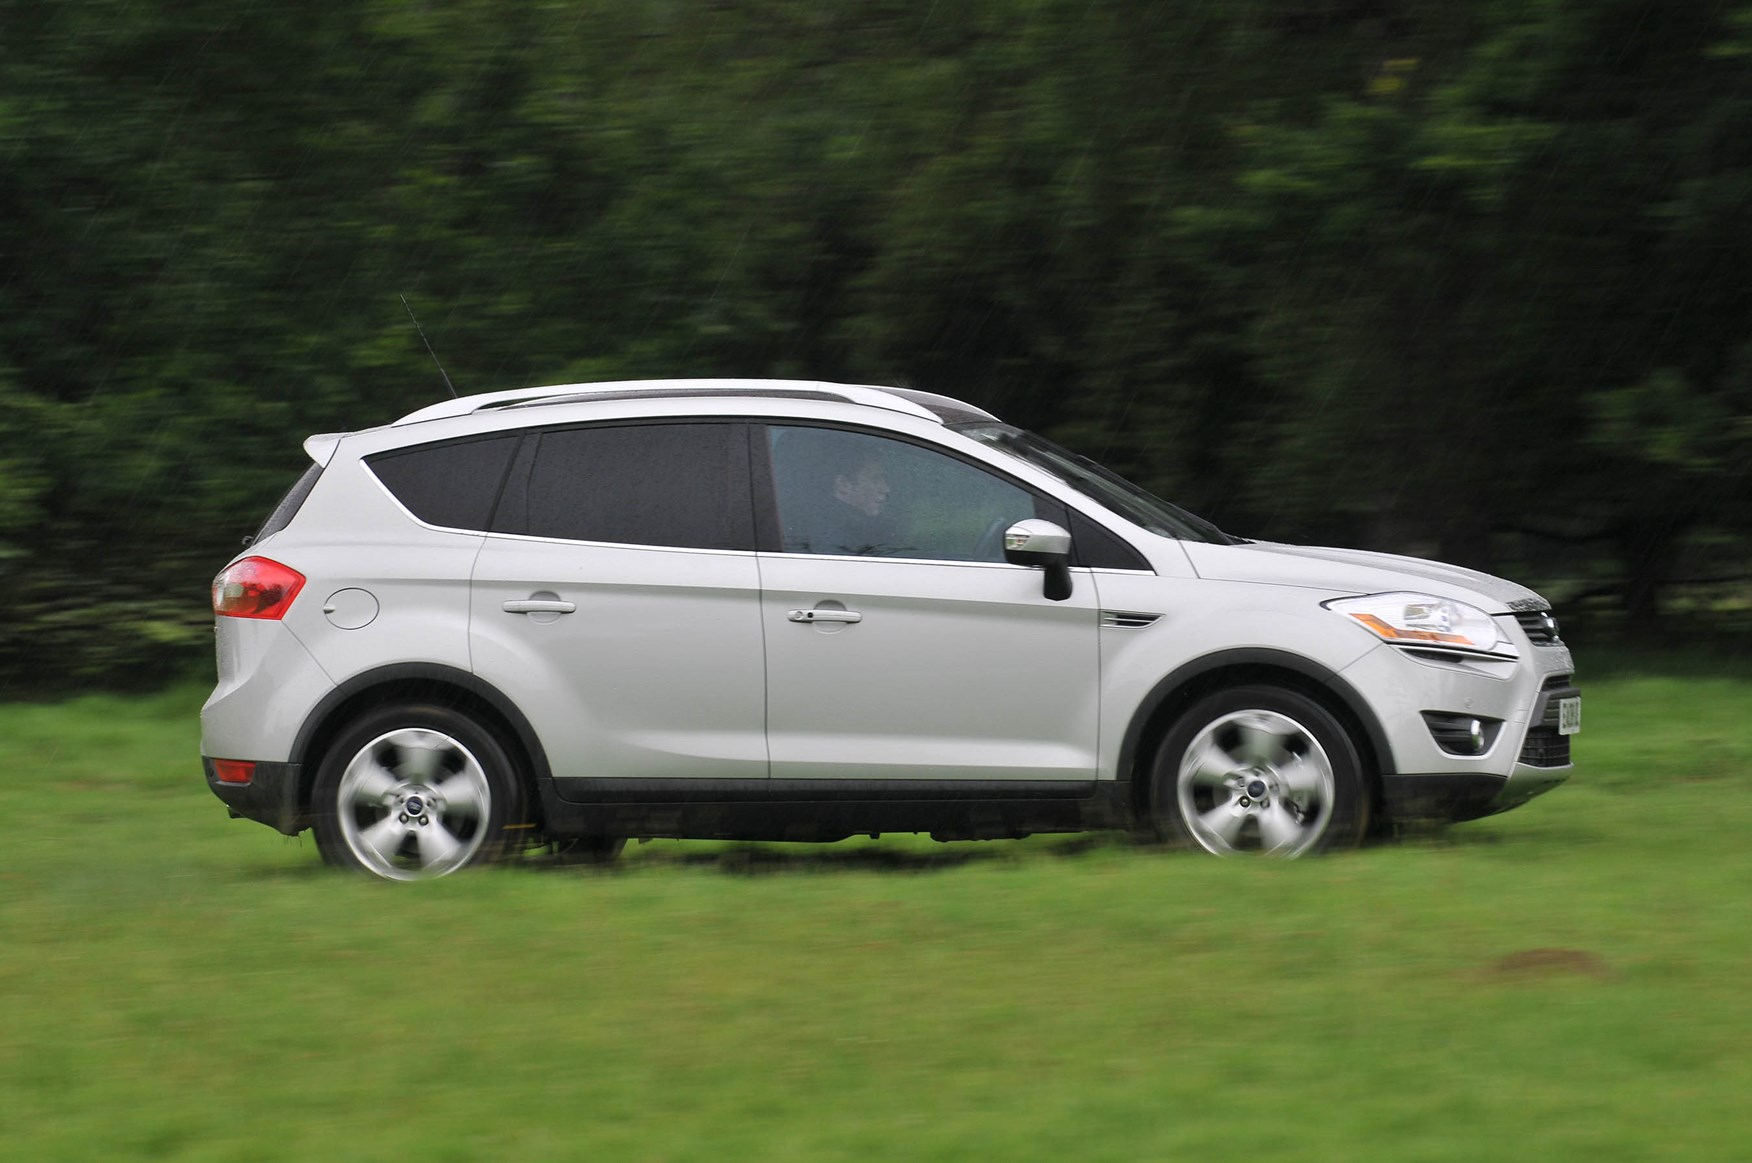 View All Images Of The Ford Kuga